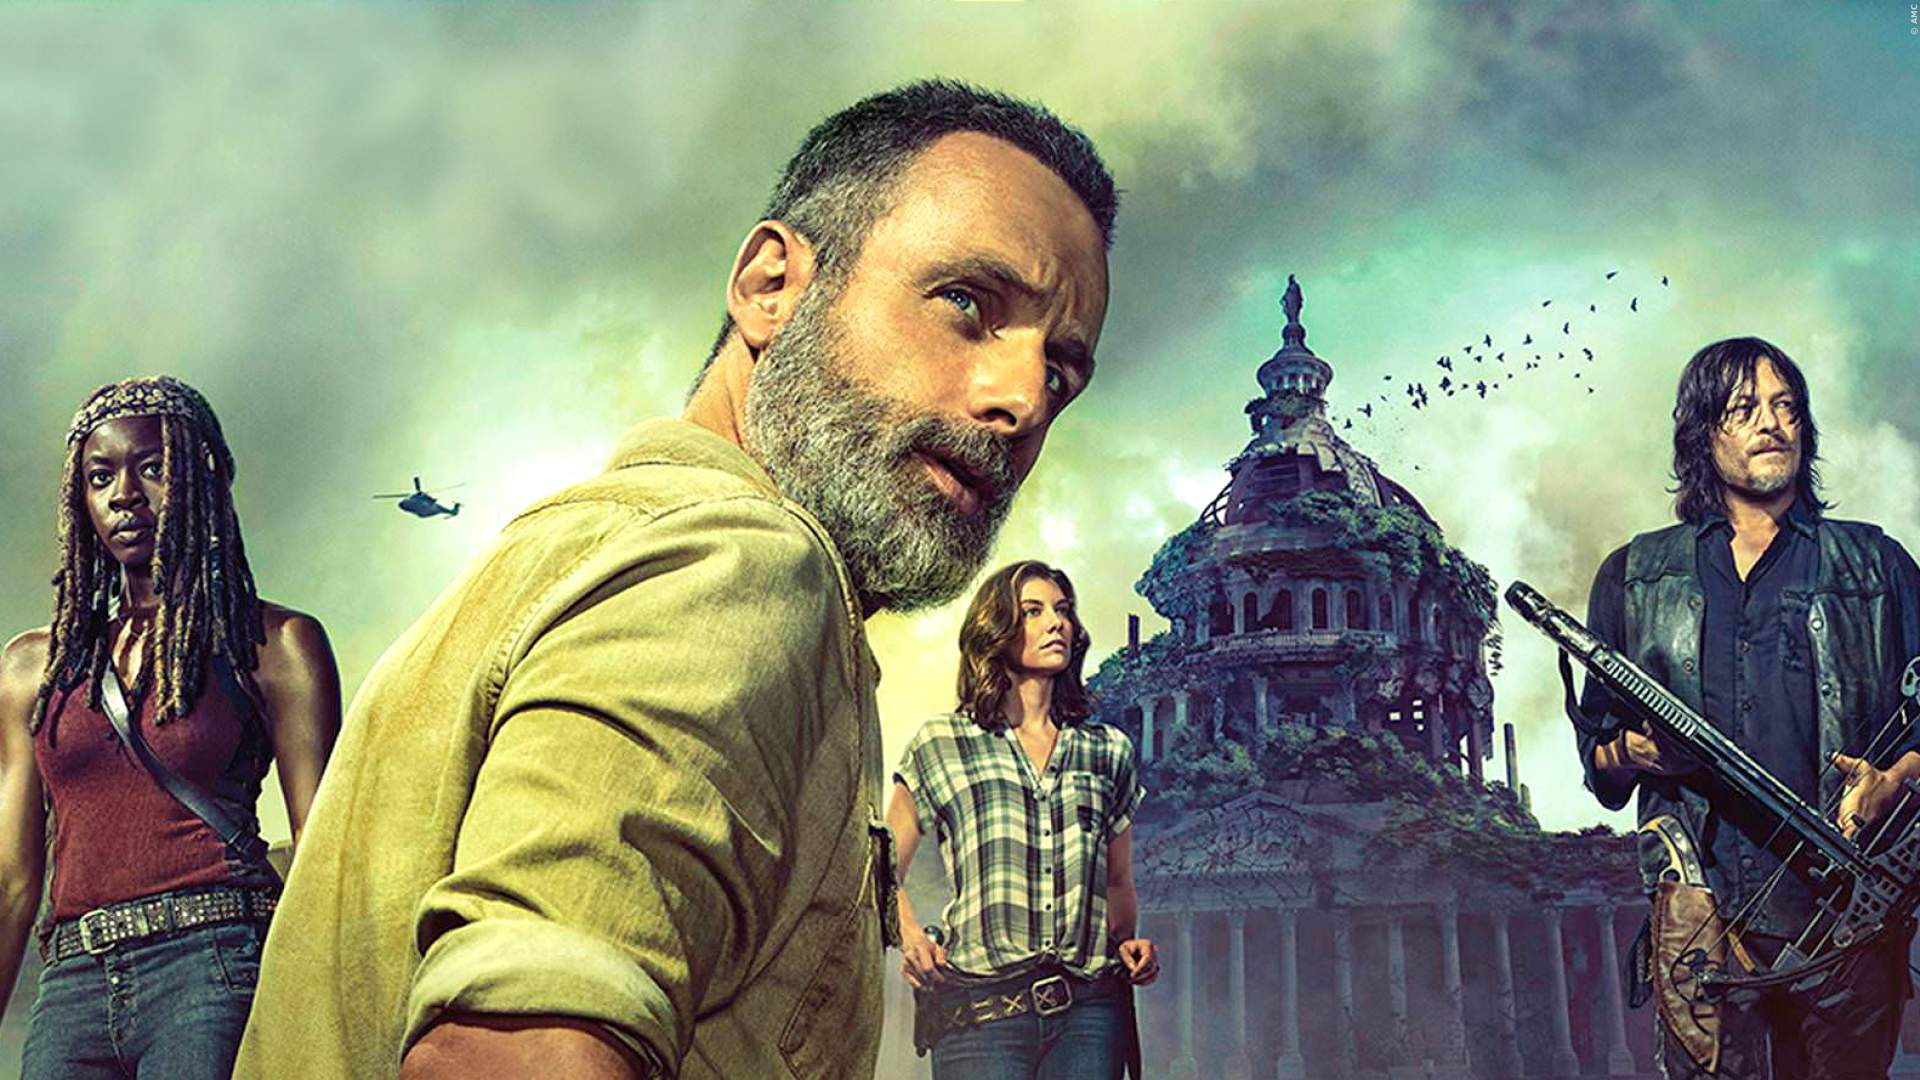 The Walking Dead Staffel 9: Alles wird anders - Bild 1 von 1